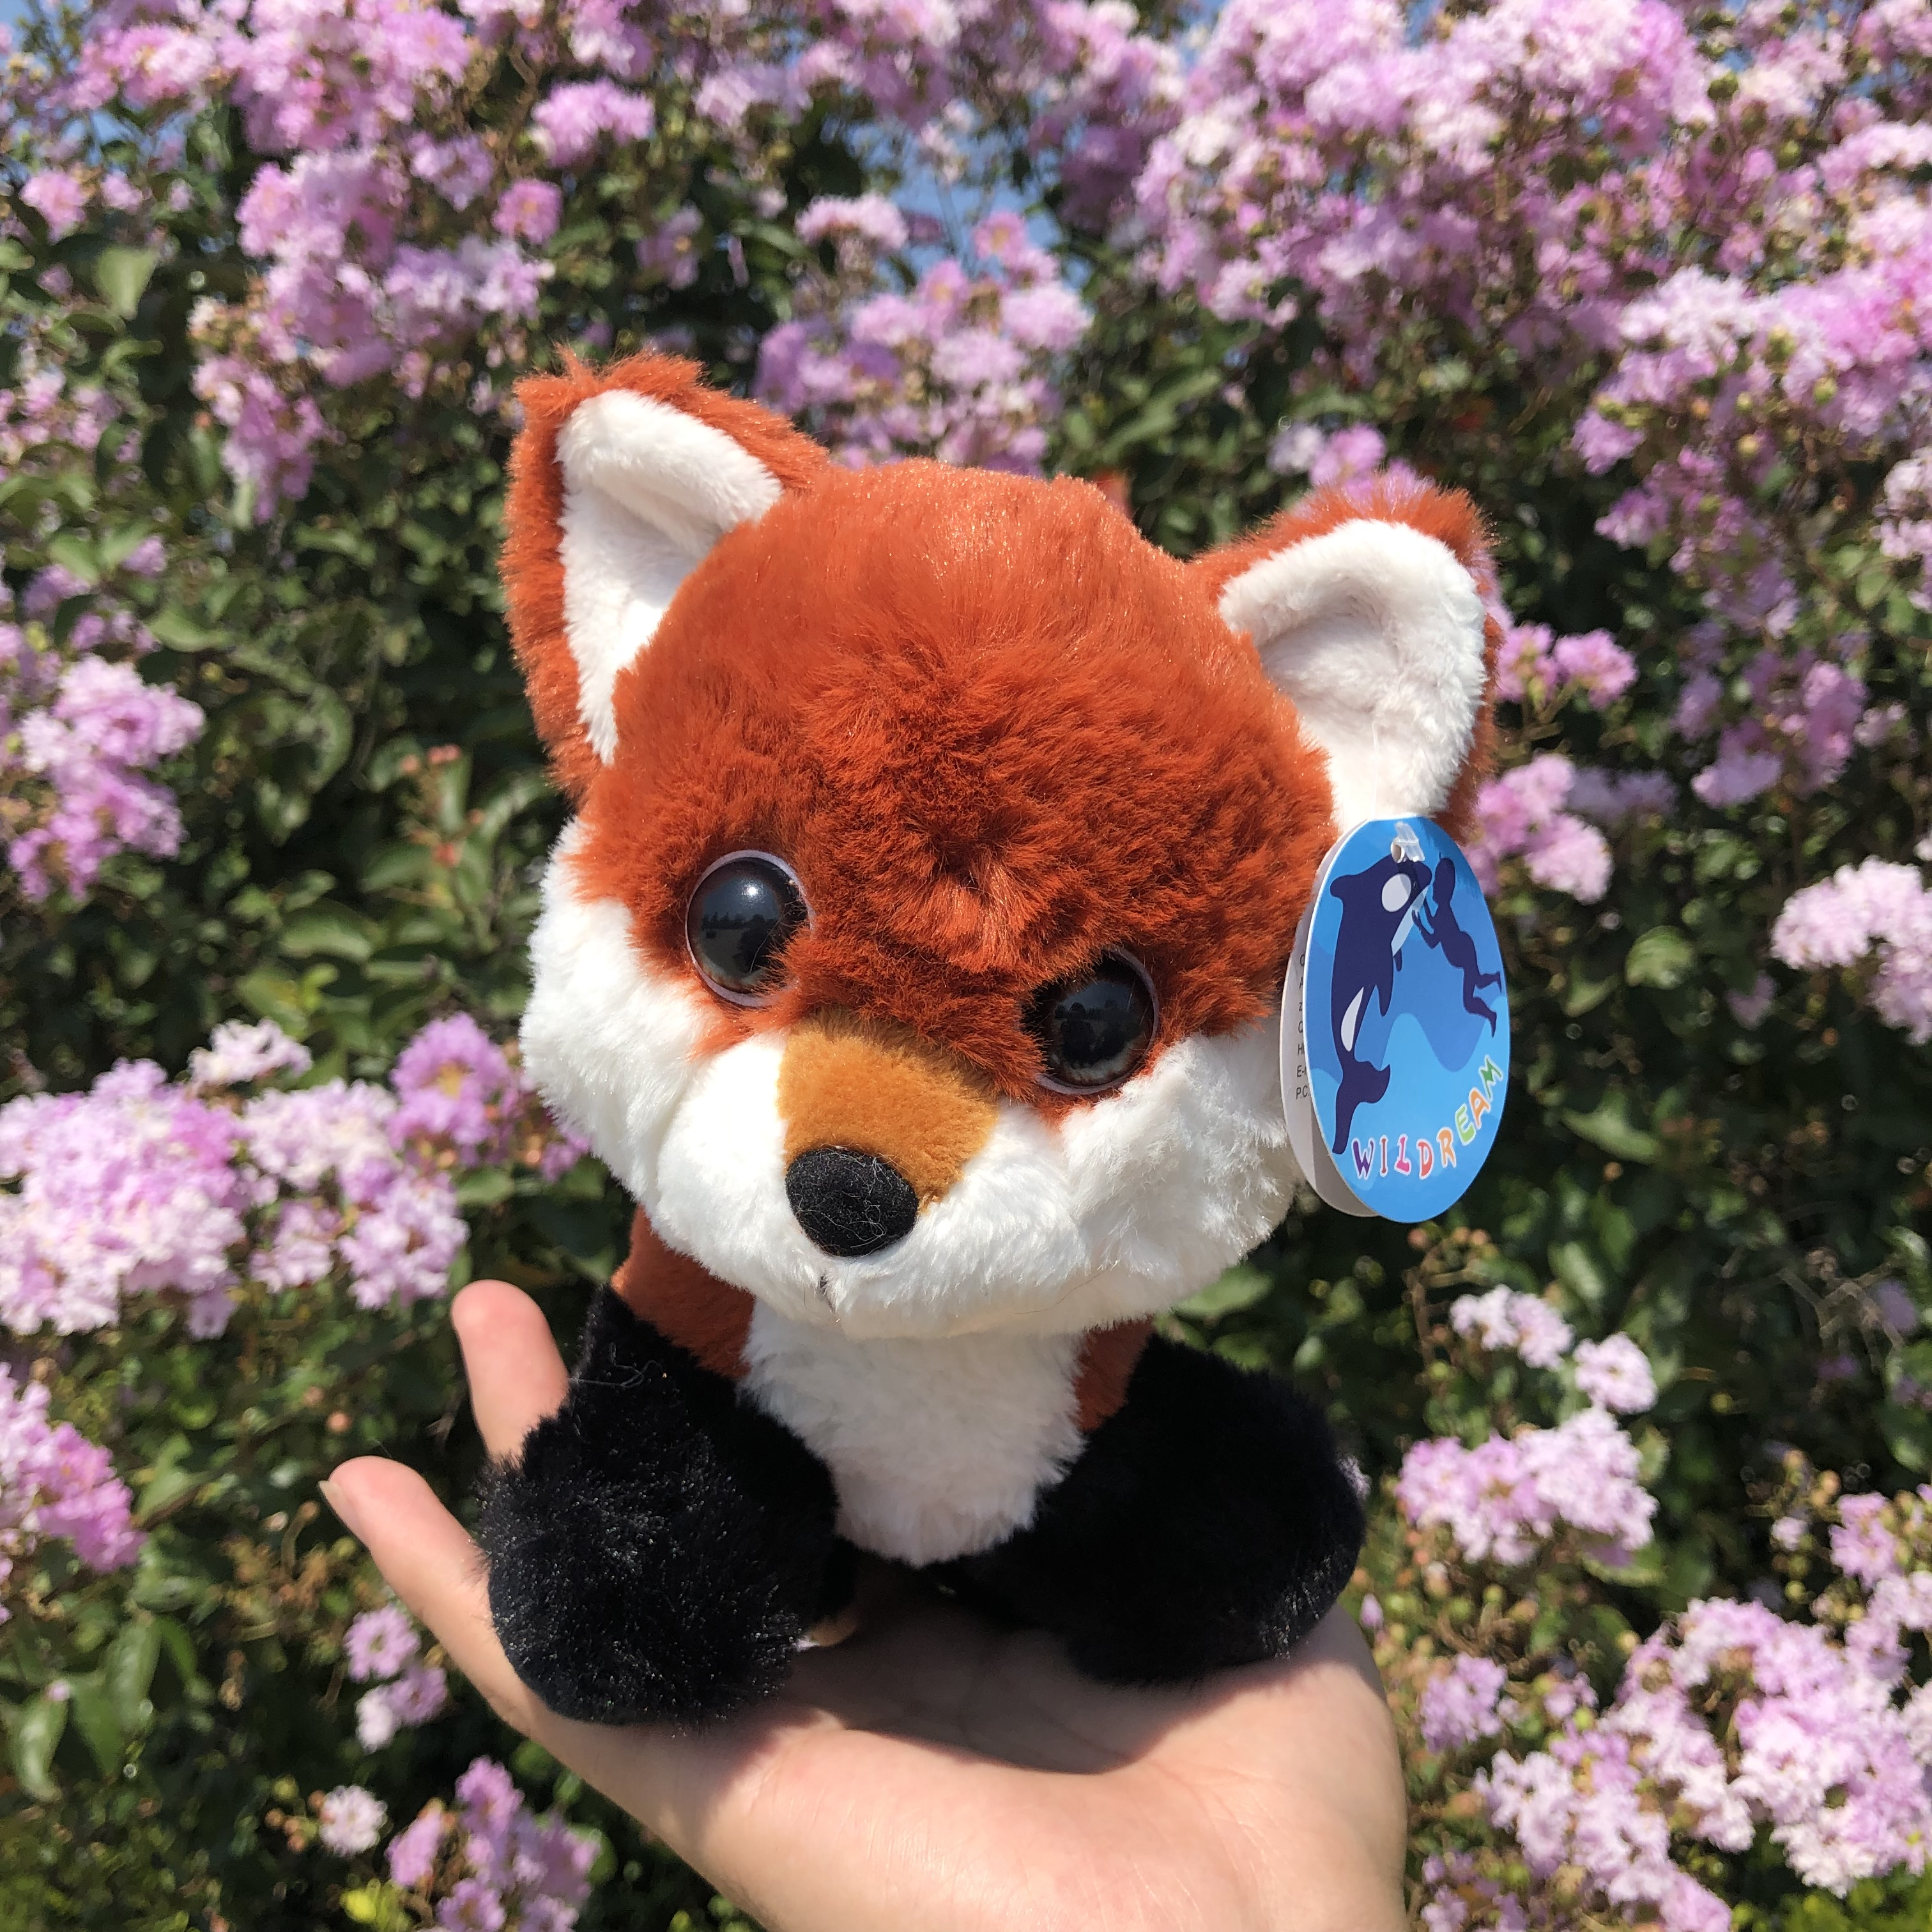 18cm New Arrive Lovely Stuffed Plush Long Tail Fox Toys Dolls Kawaii Plush Toy Children Friends Gifts